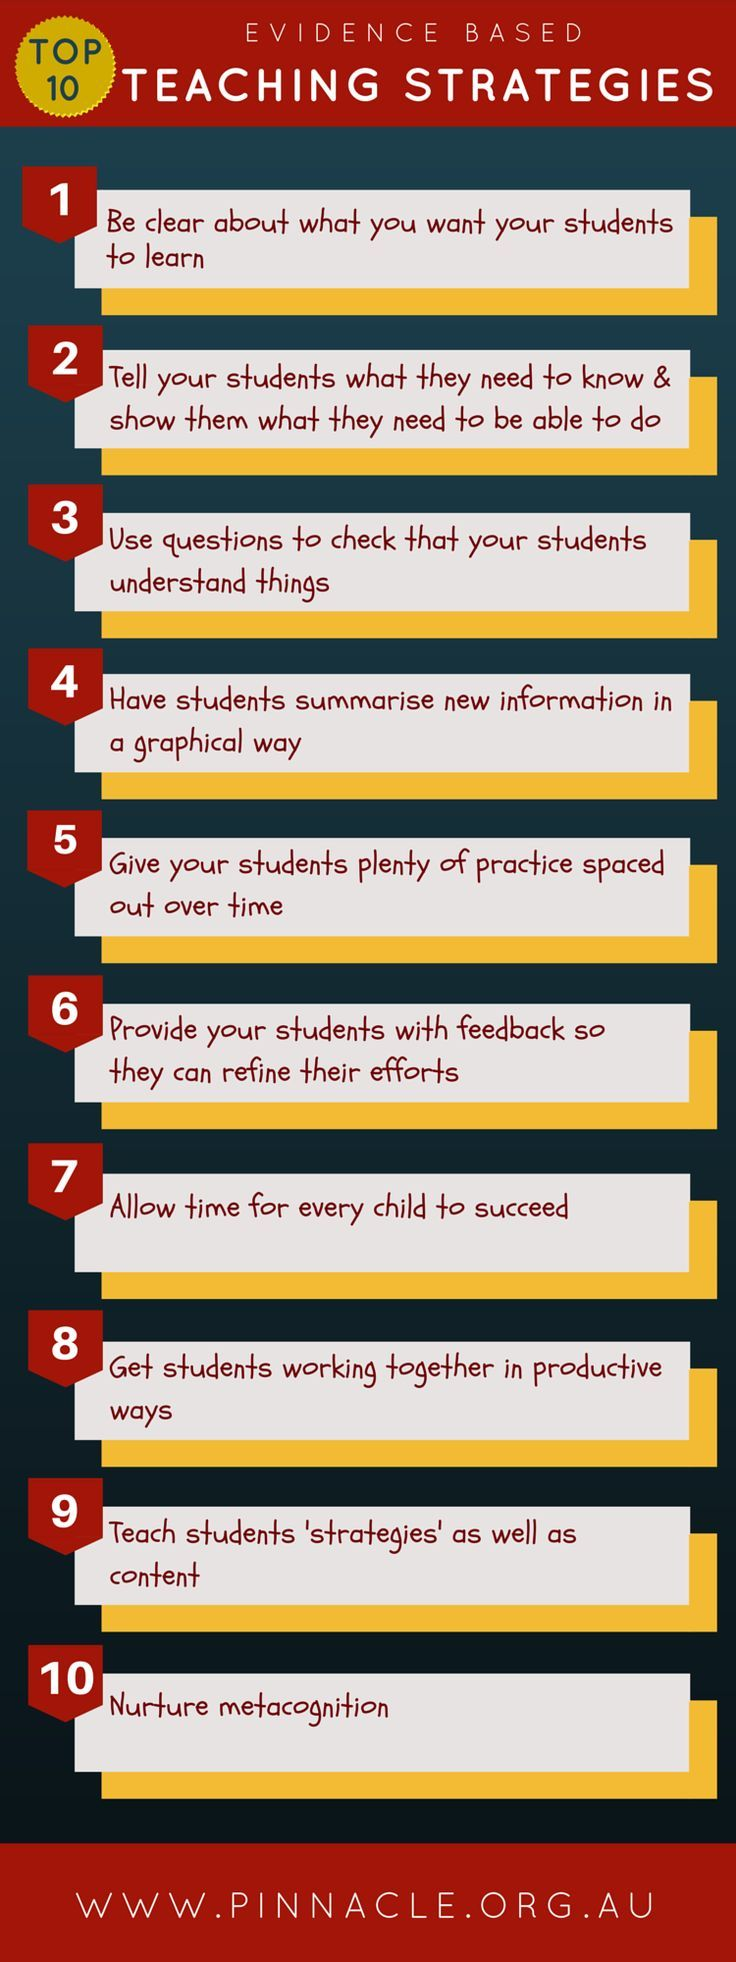 Top 10 Evidence Based Teaching Strategies Infographic - http://elearninginfographics.com/top-10-evidence-based-teaching-strategies-infographic/